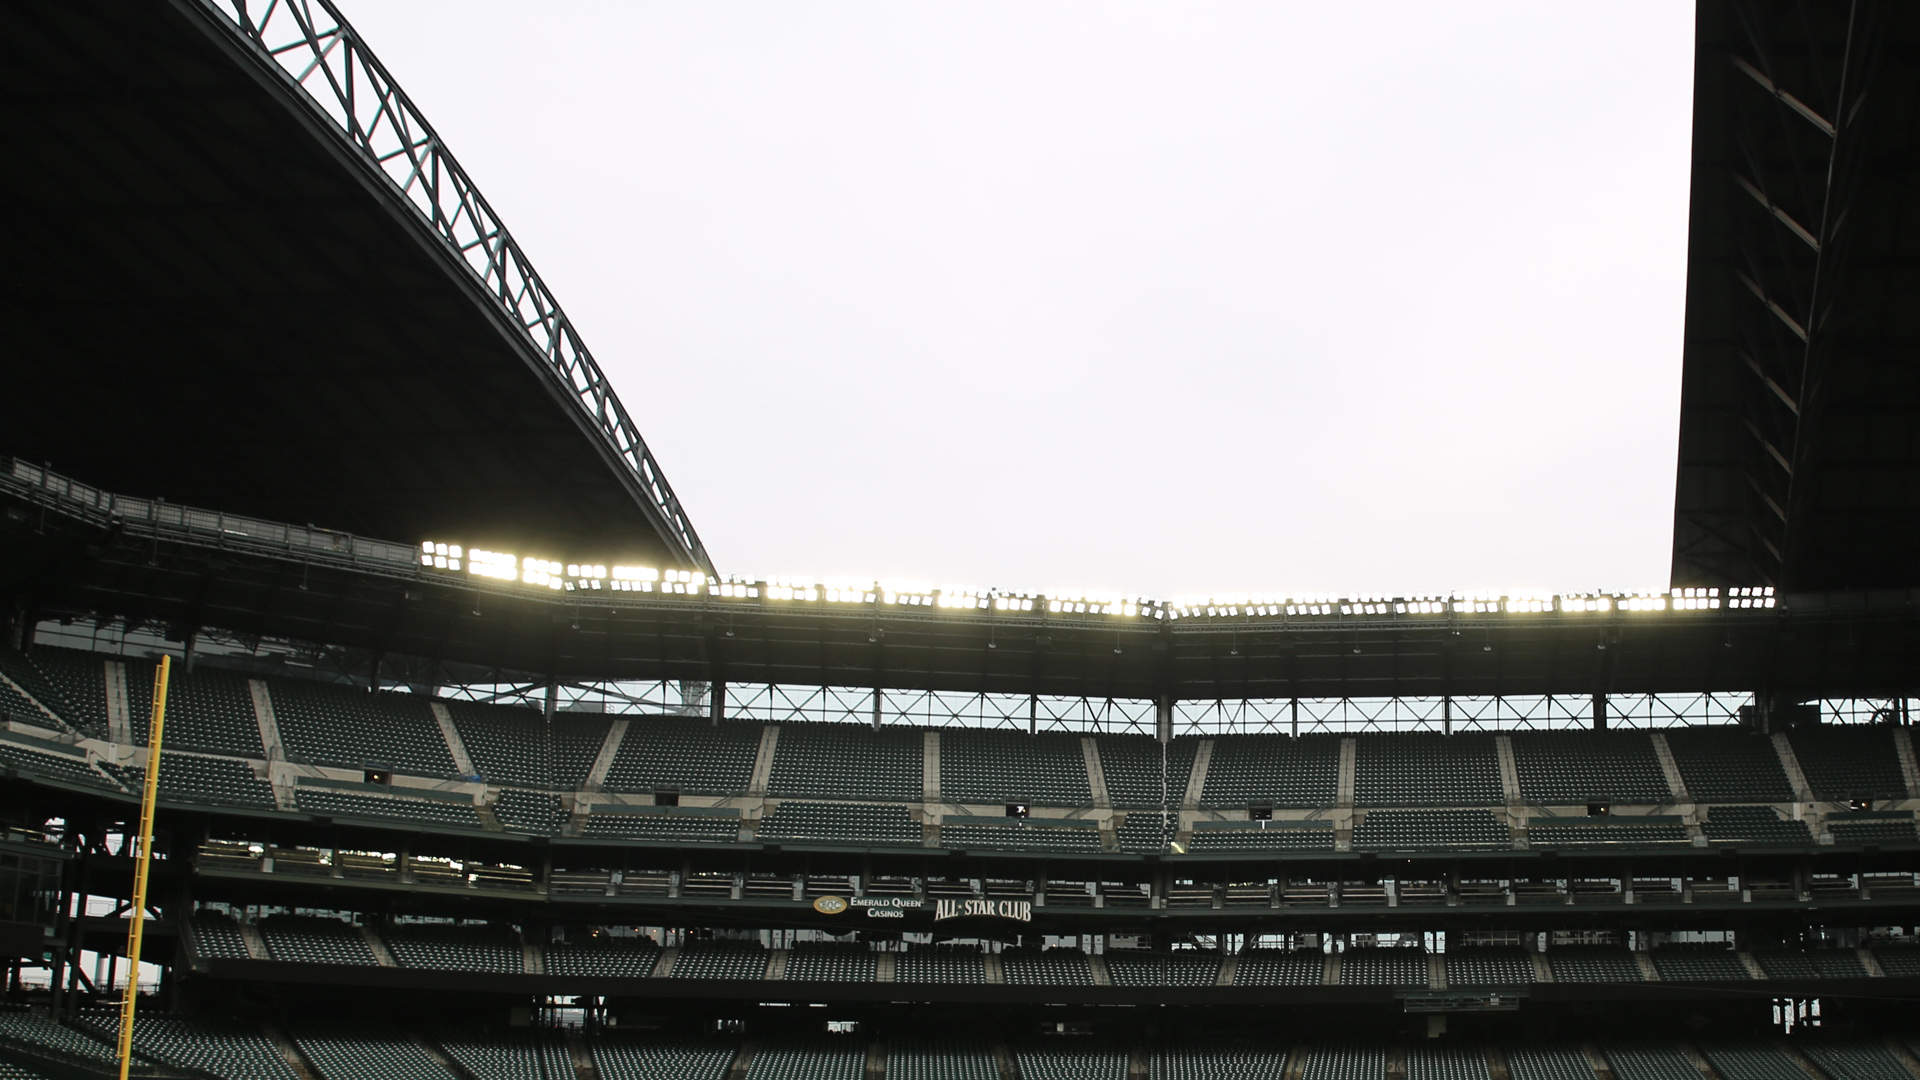 SUFA @Safeco Field